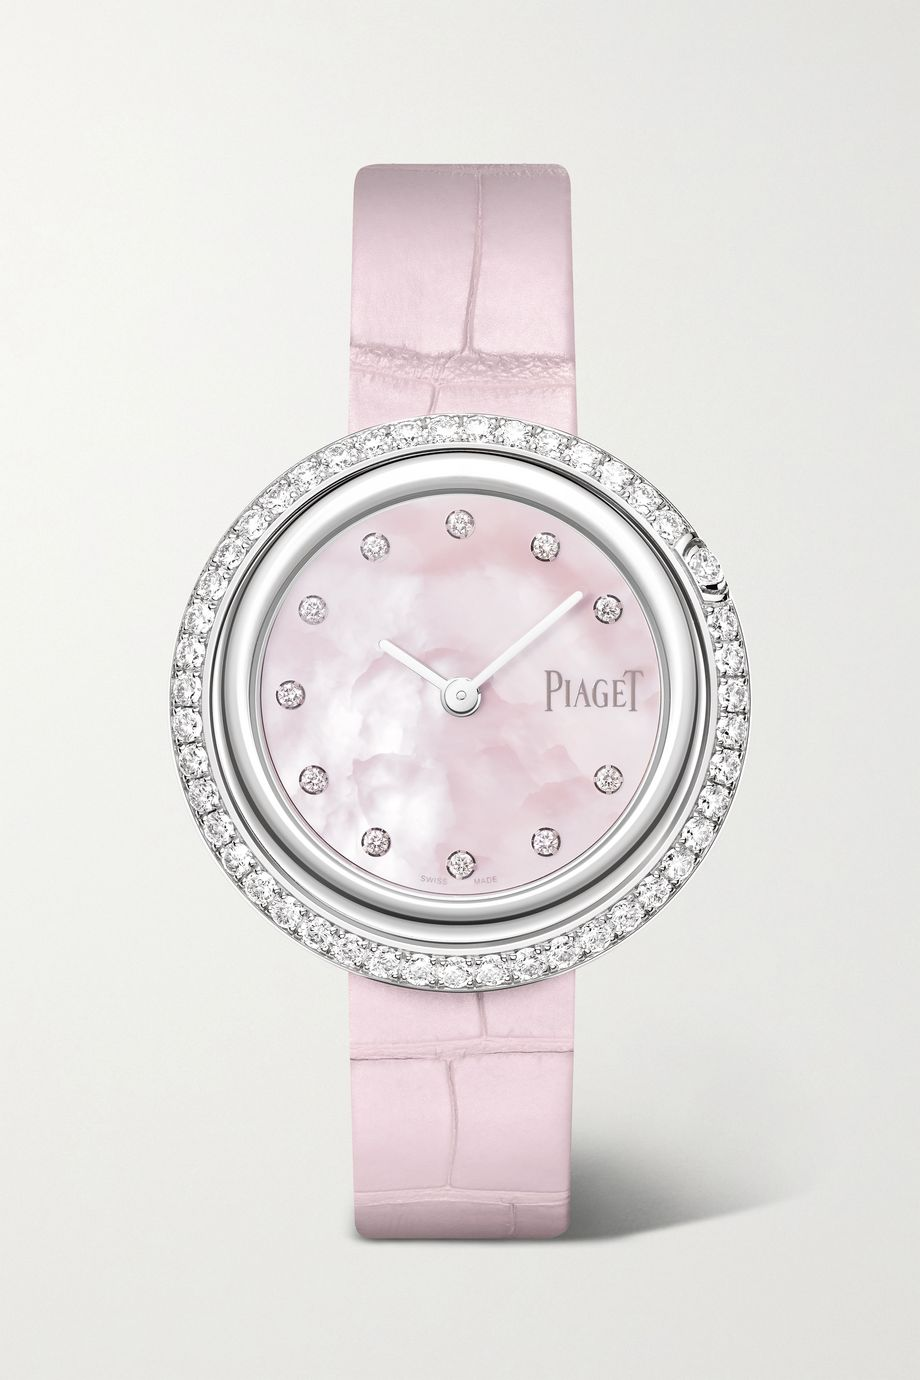 Piaget Possession 34mm 18-karat white gold, alligator and diamond watch